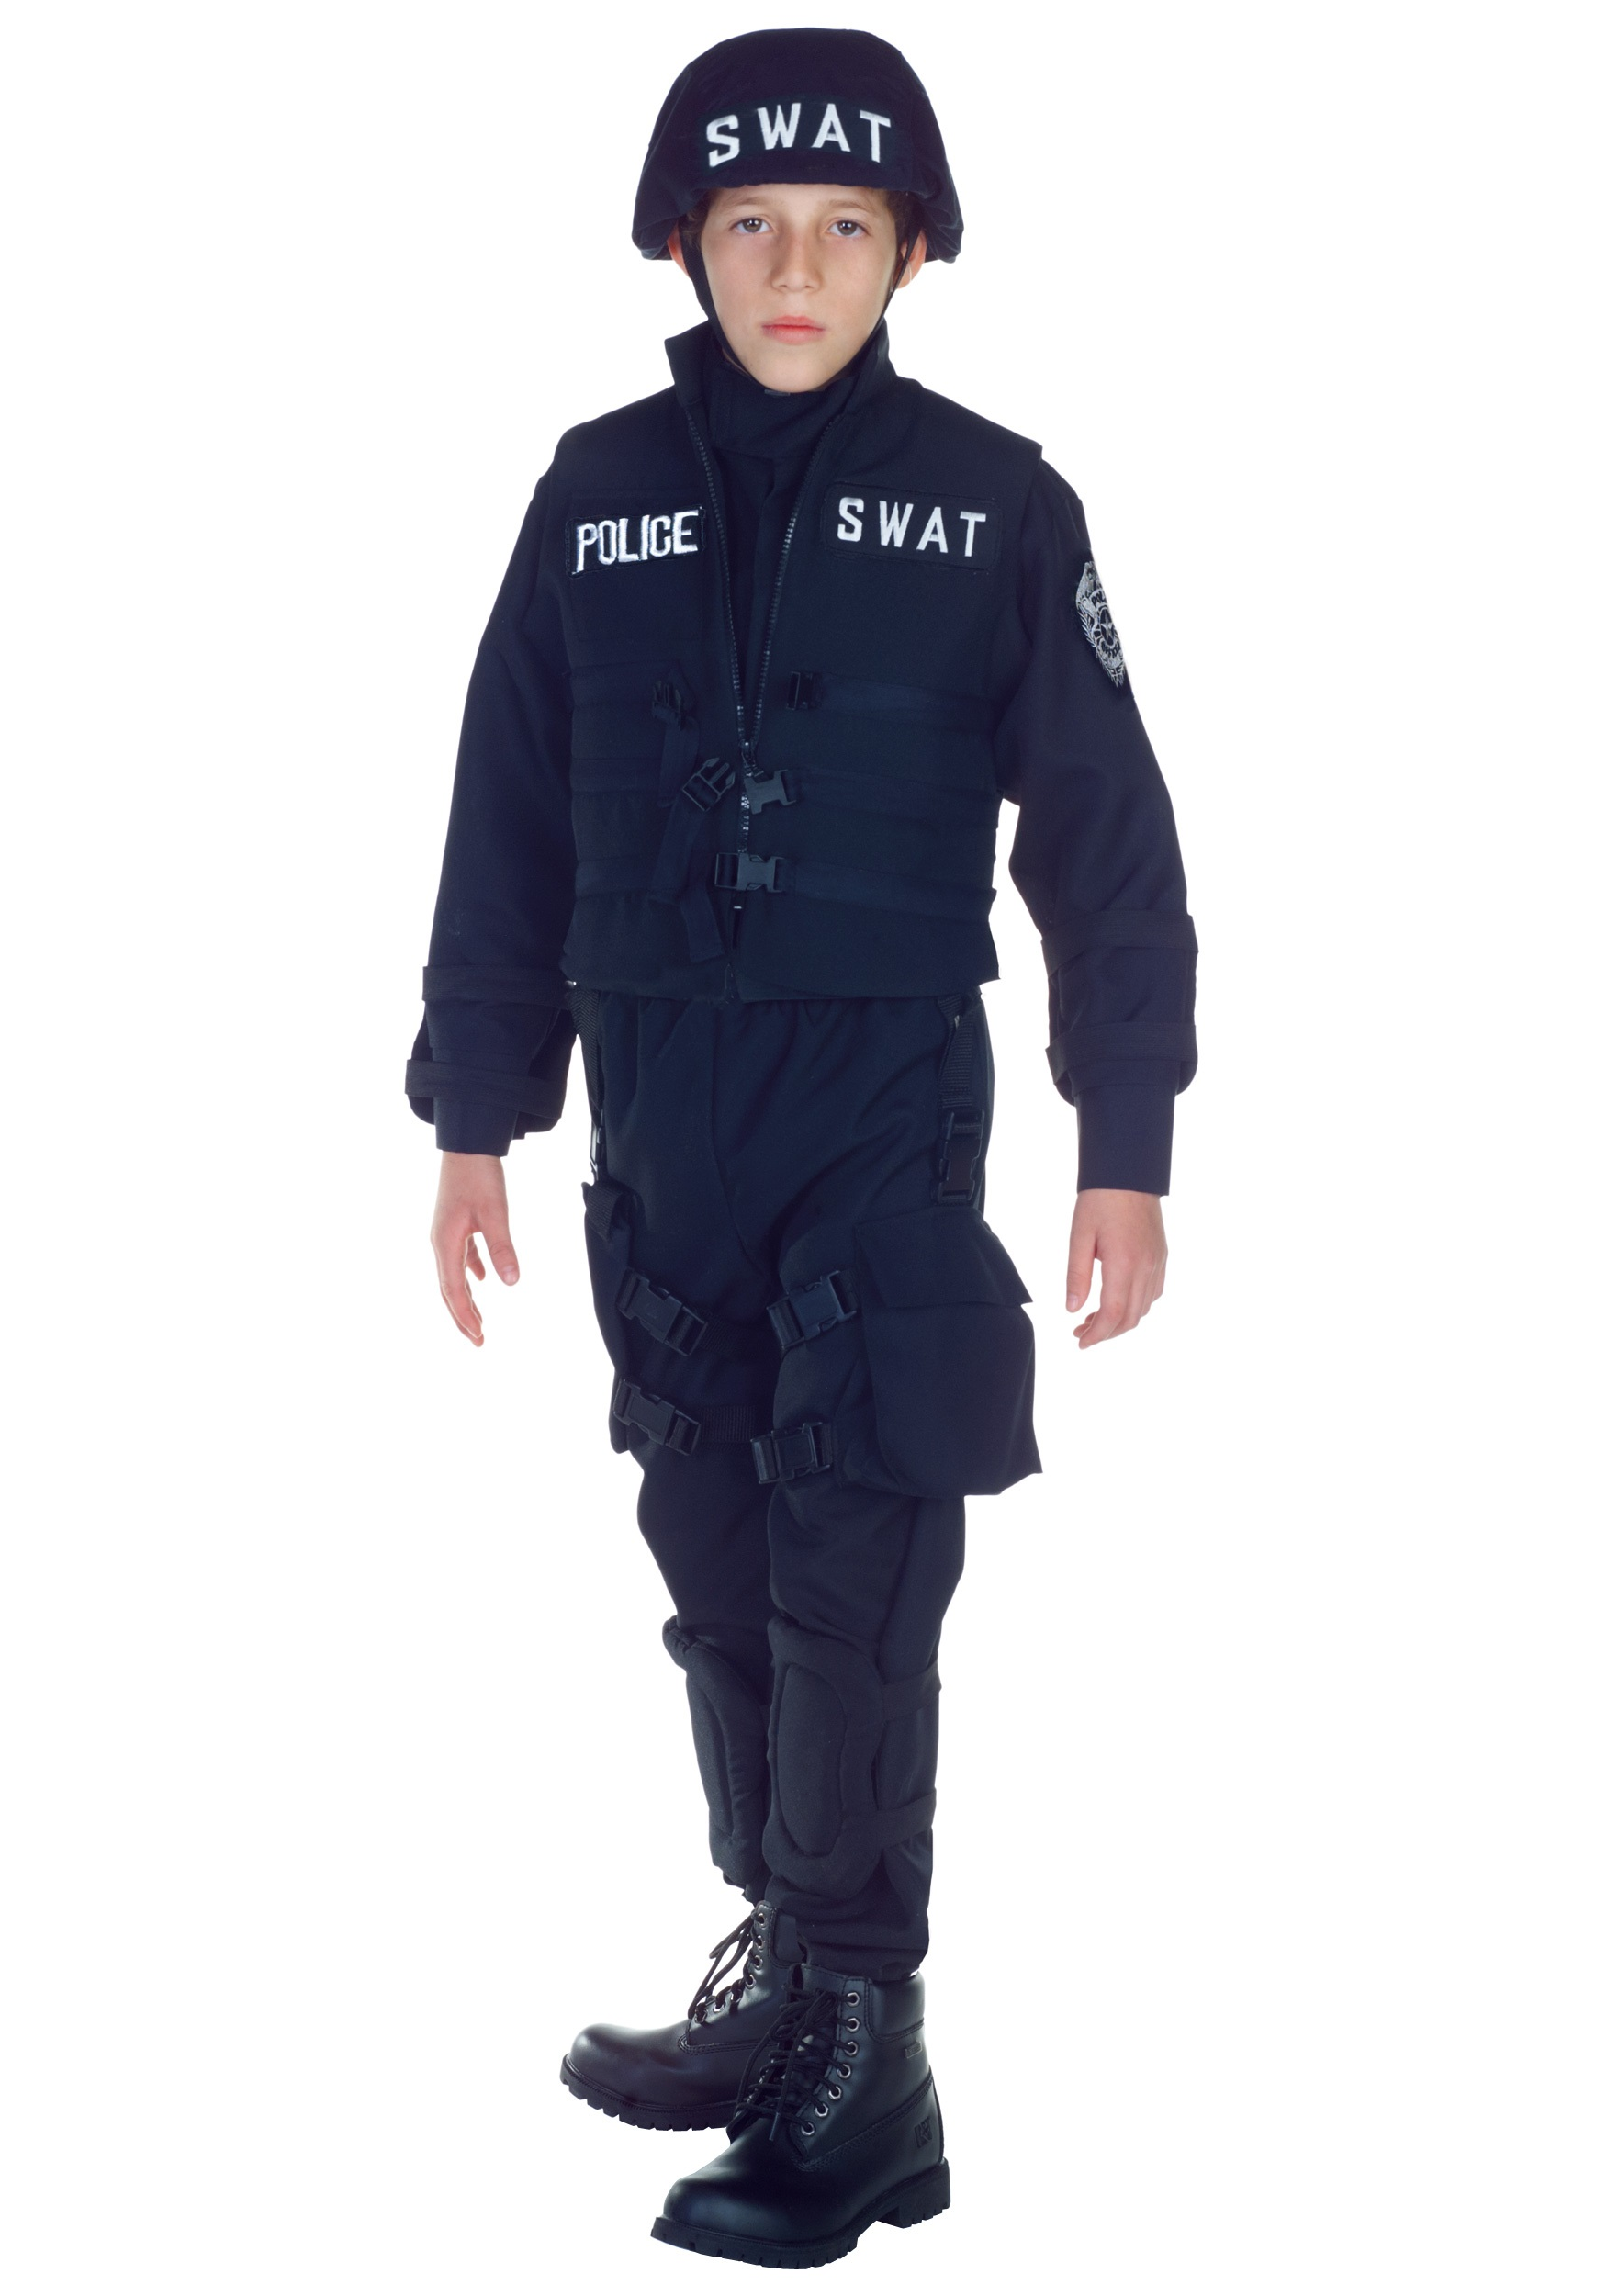 Kids SWAT Team Costume  sc 1 st  Halloween Costumes & Kids SWAT Team Costume - Halloween Costumes